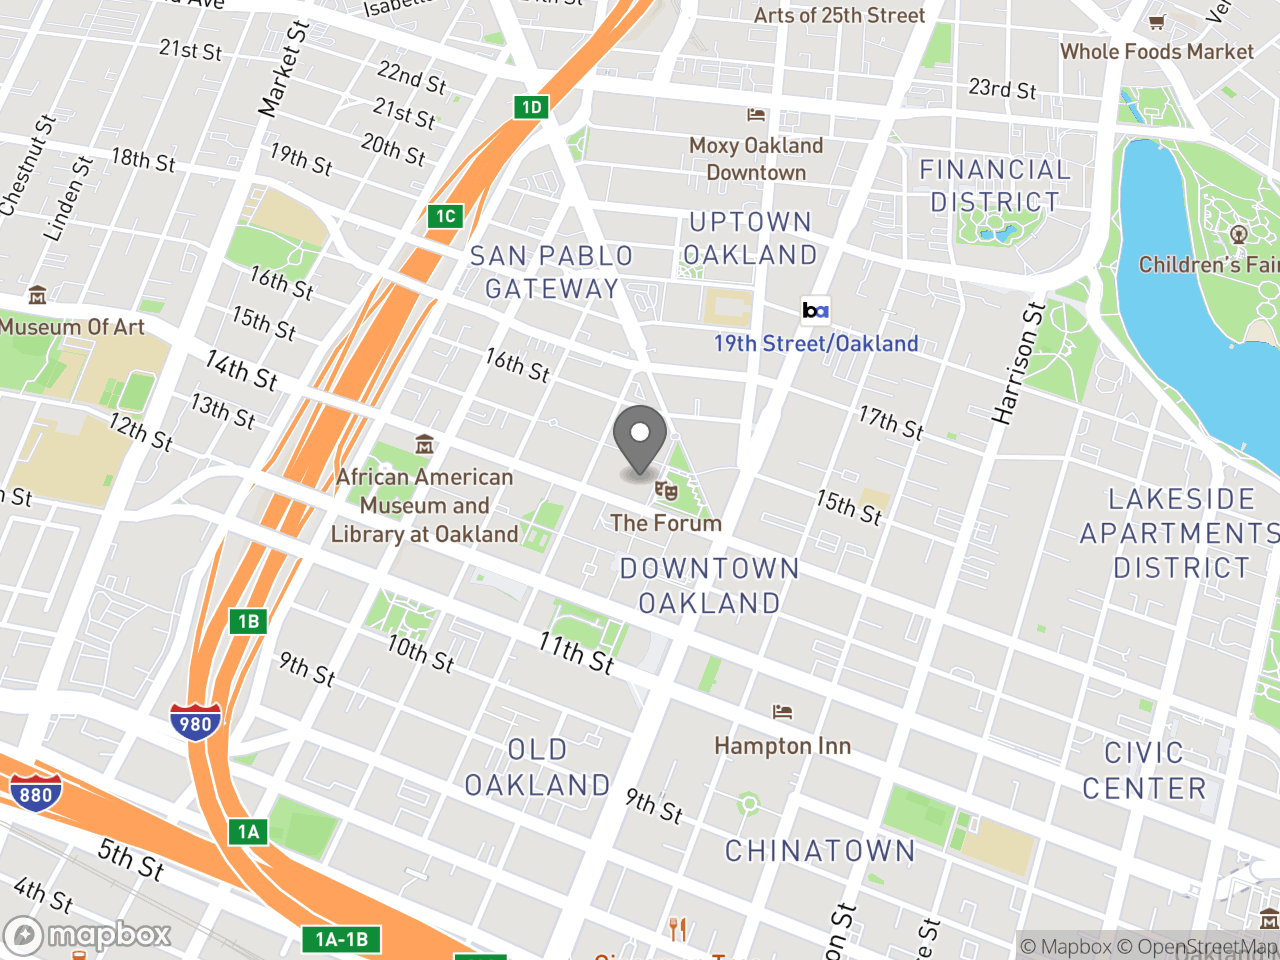 Map image for Rent Board Regular Meeting November 14, 2019, located at 1 Frank H. Ogawa Plaza in Oakland, CA 94612